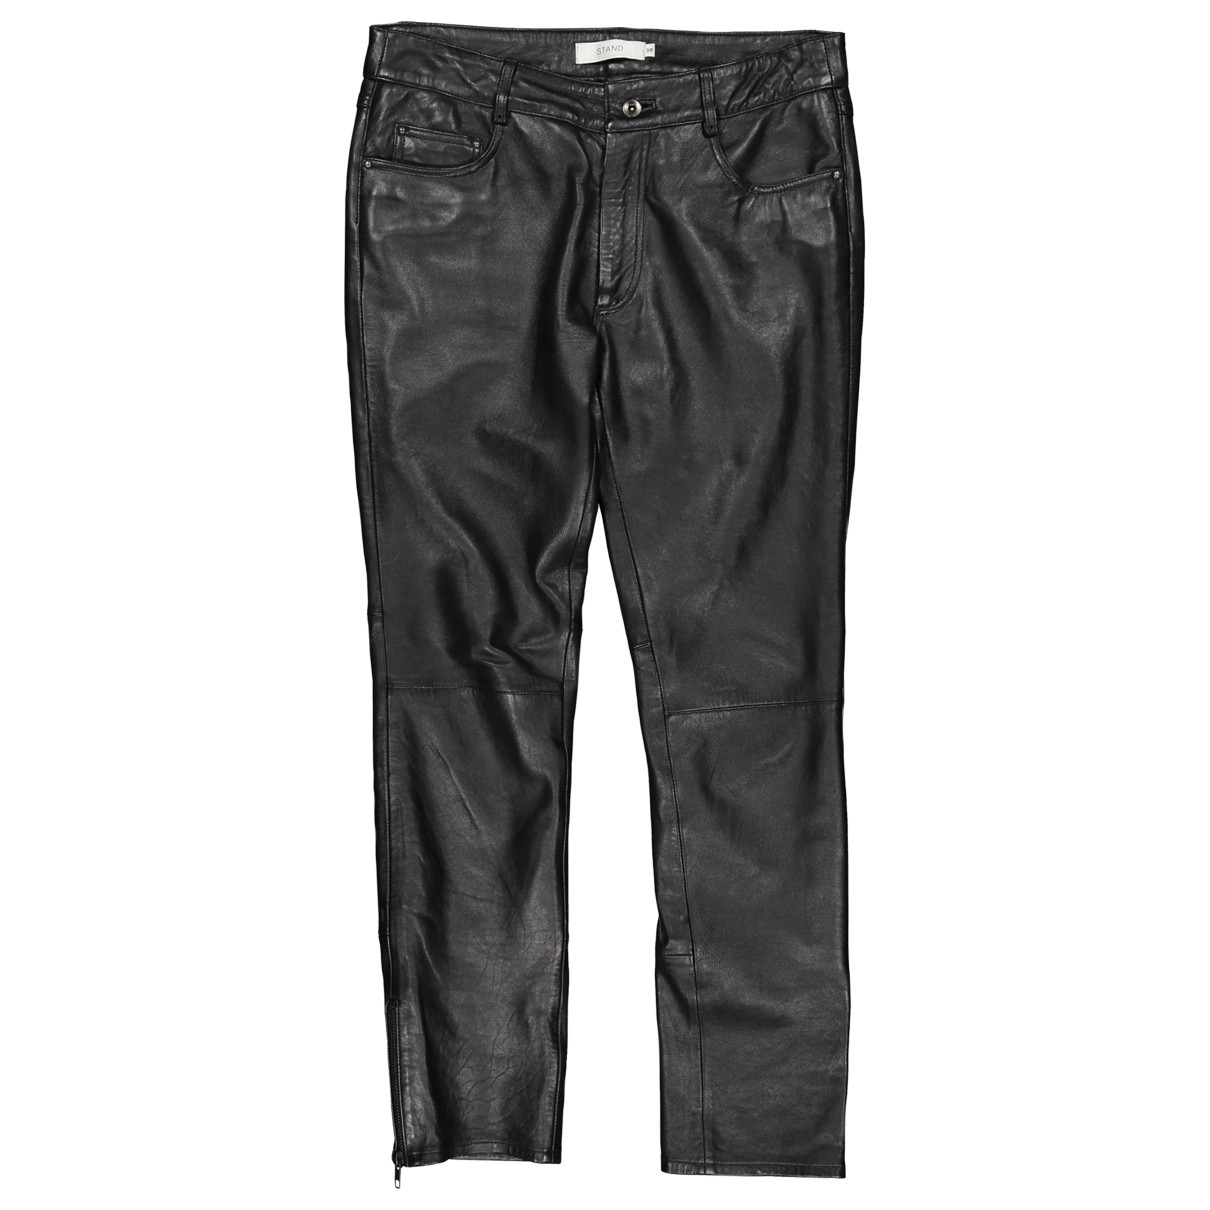 Stand Studio \N Black Leather Trousers for Women 38 FR